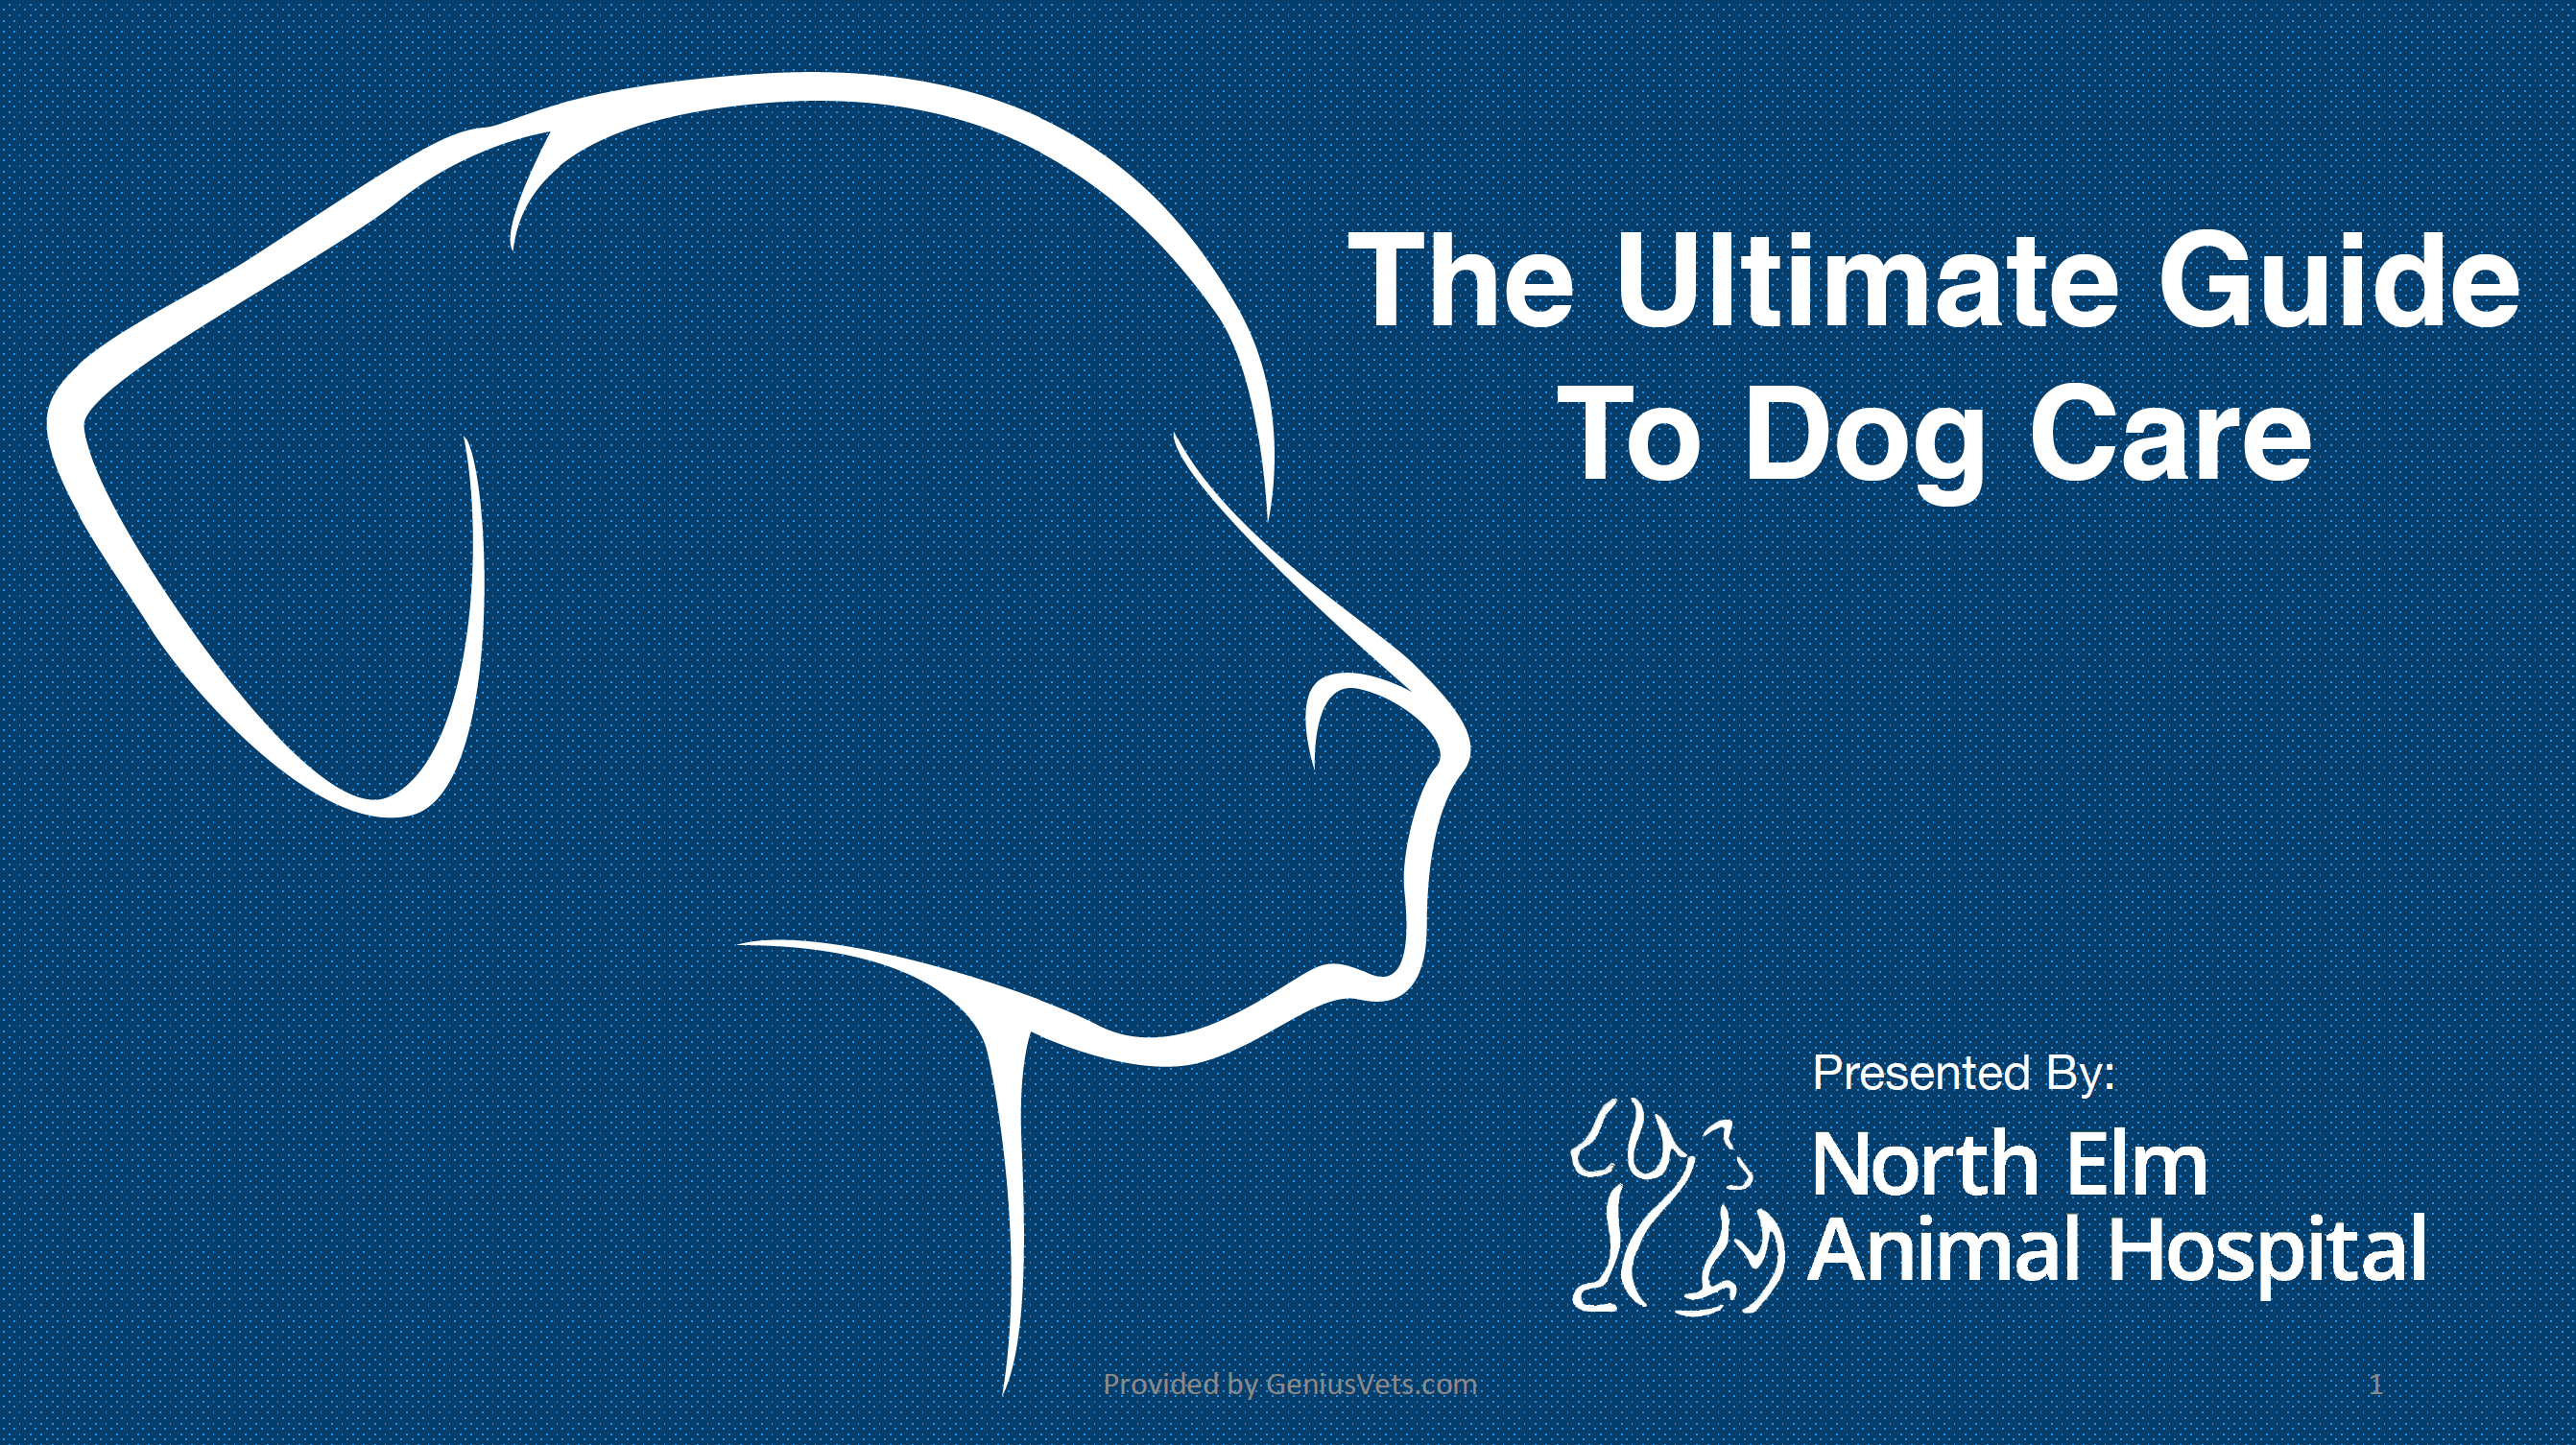 North Elm Guide To Dog Care